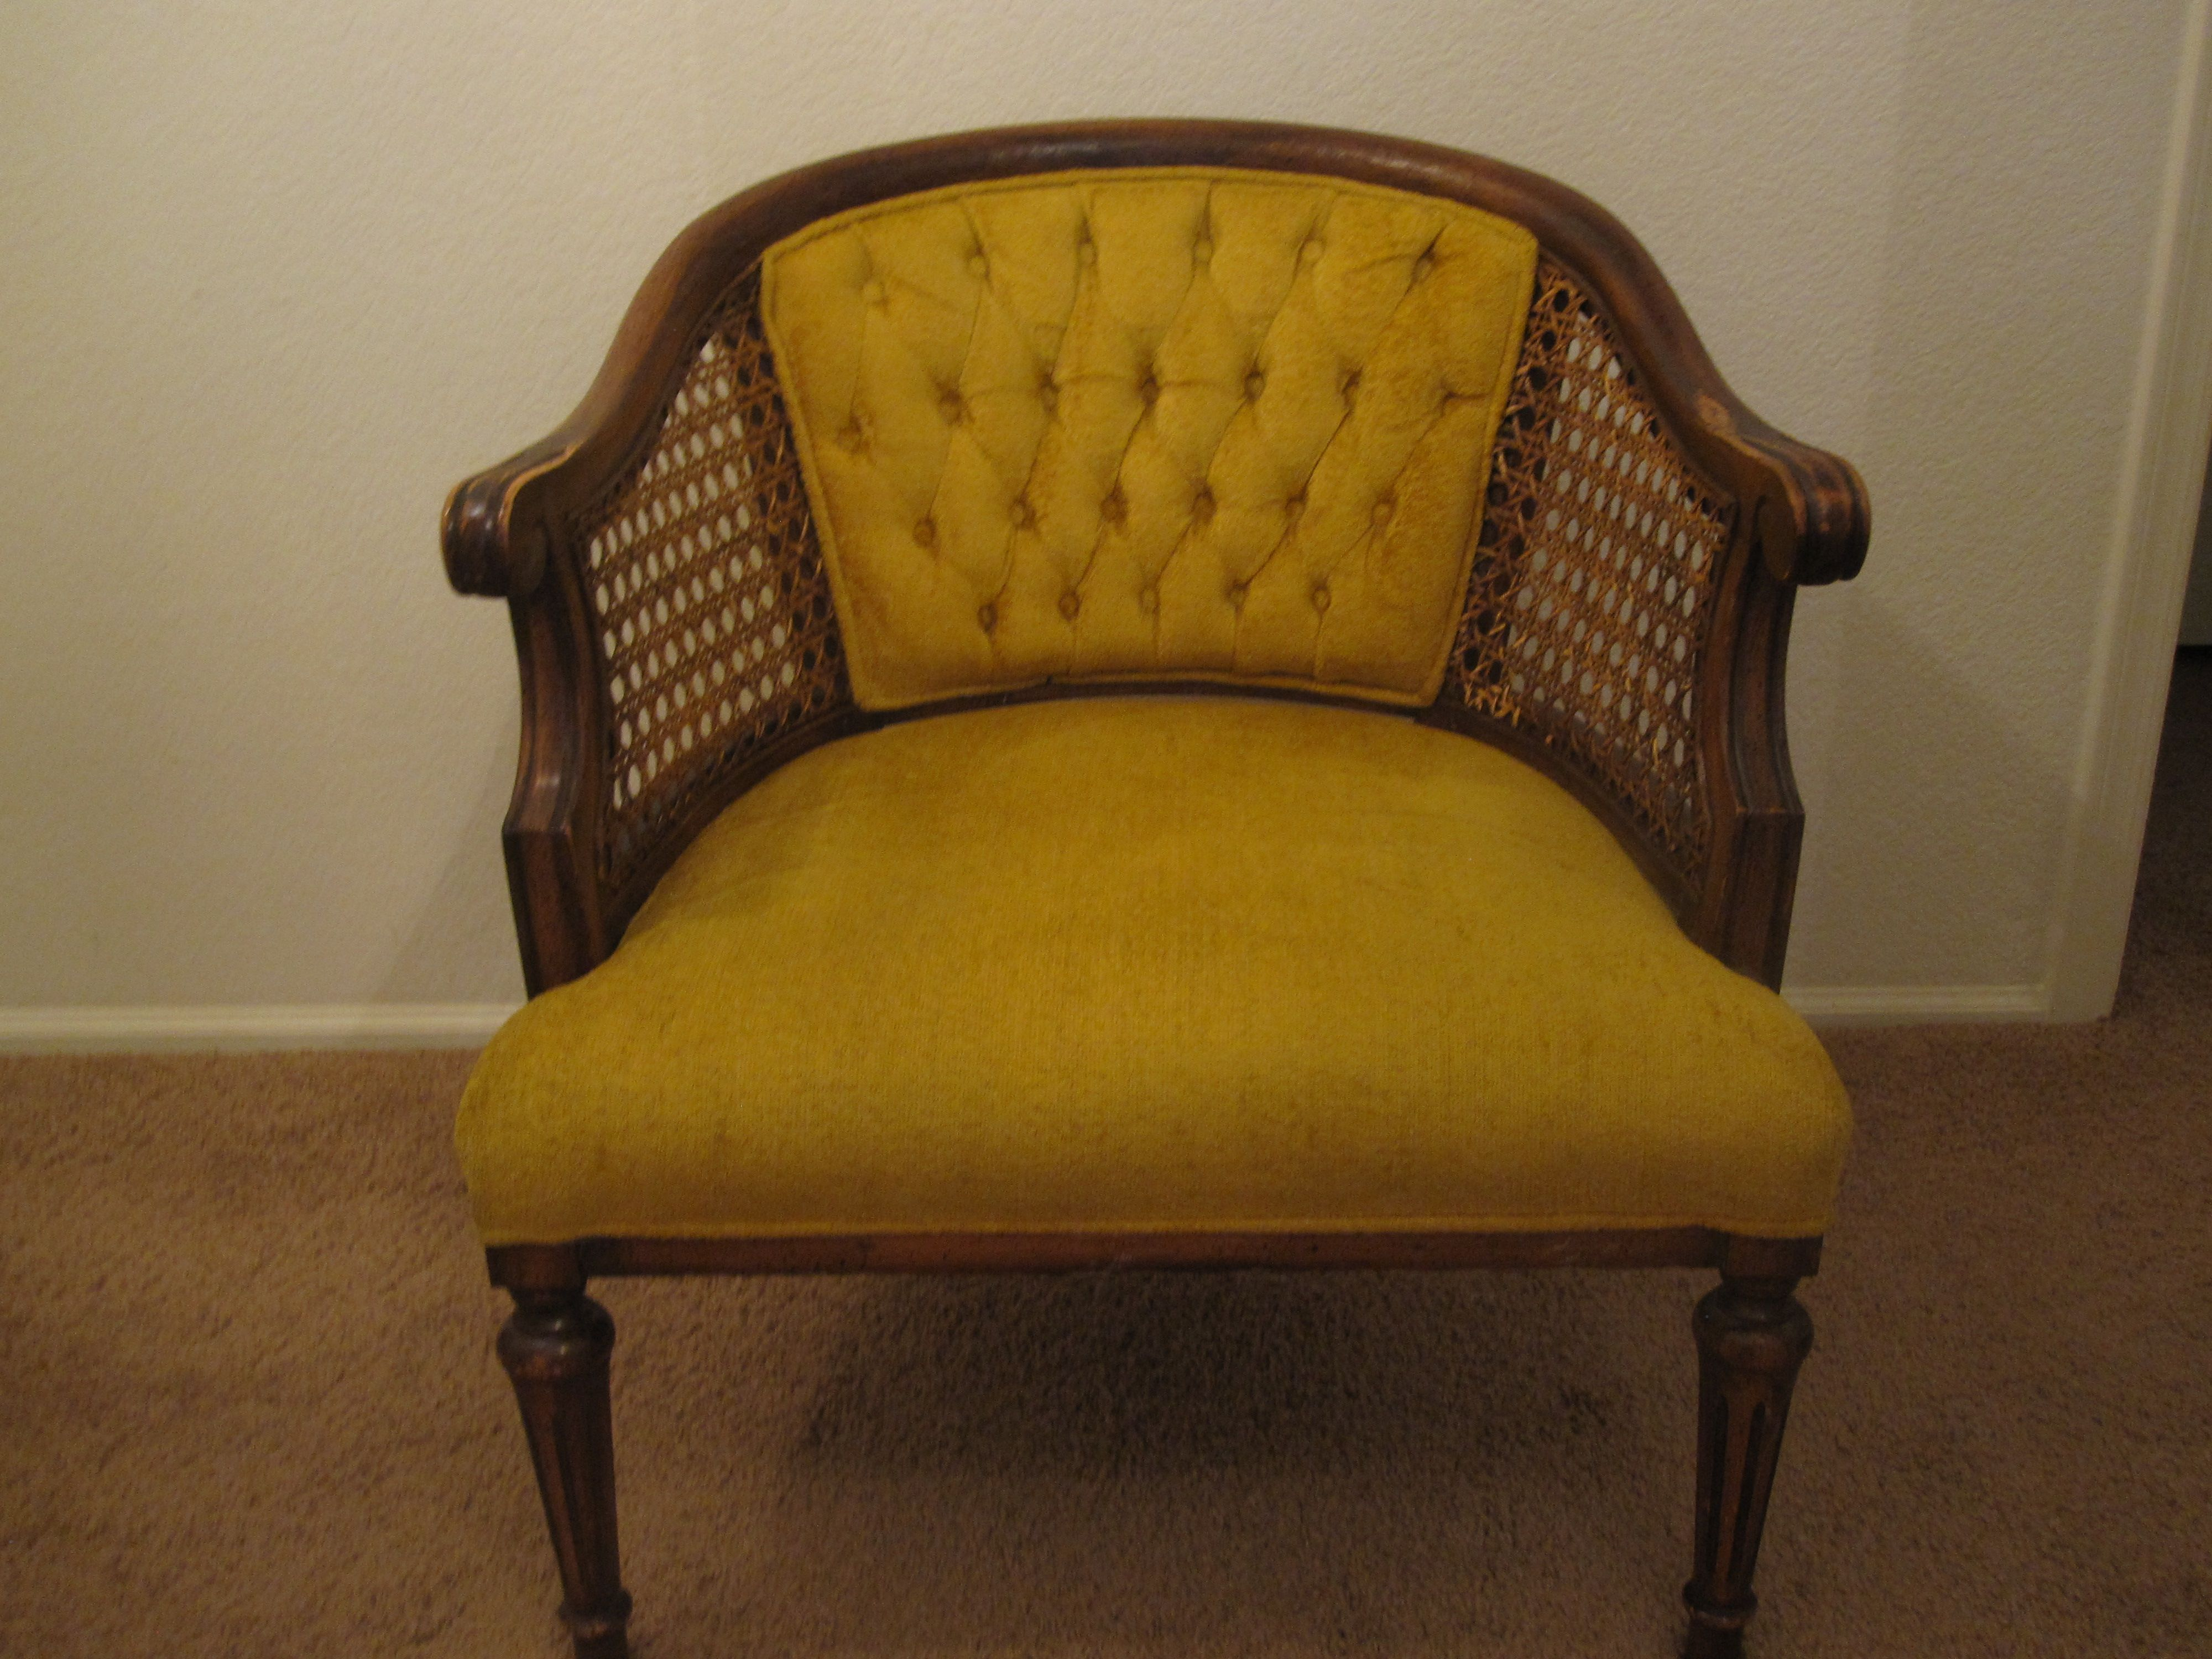 Vintage Gold Velvet Tufted Cane Barrel Arm Chair.